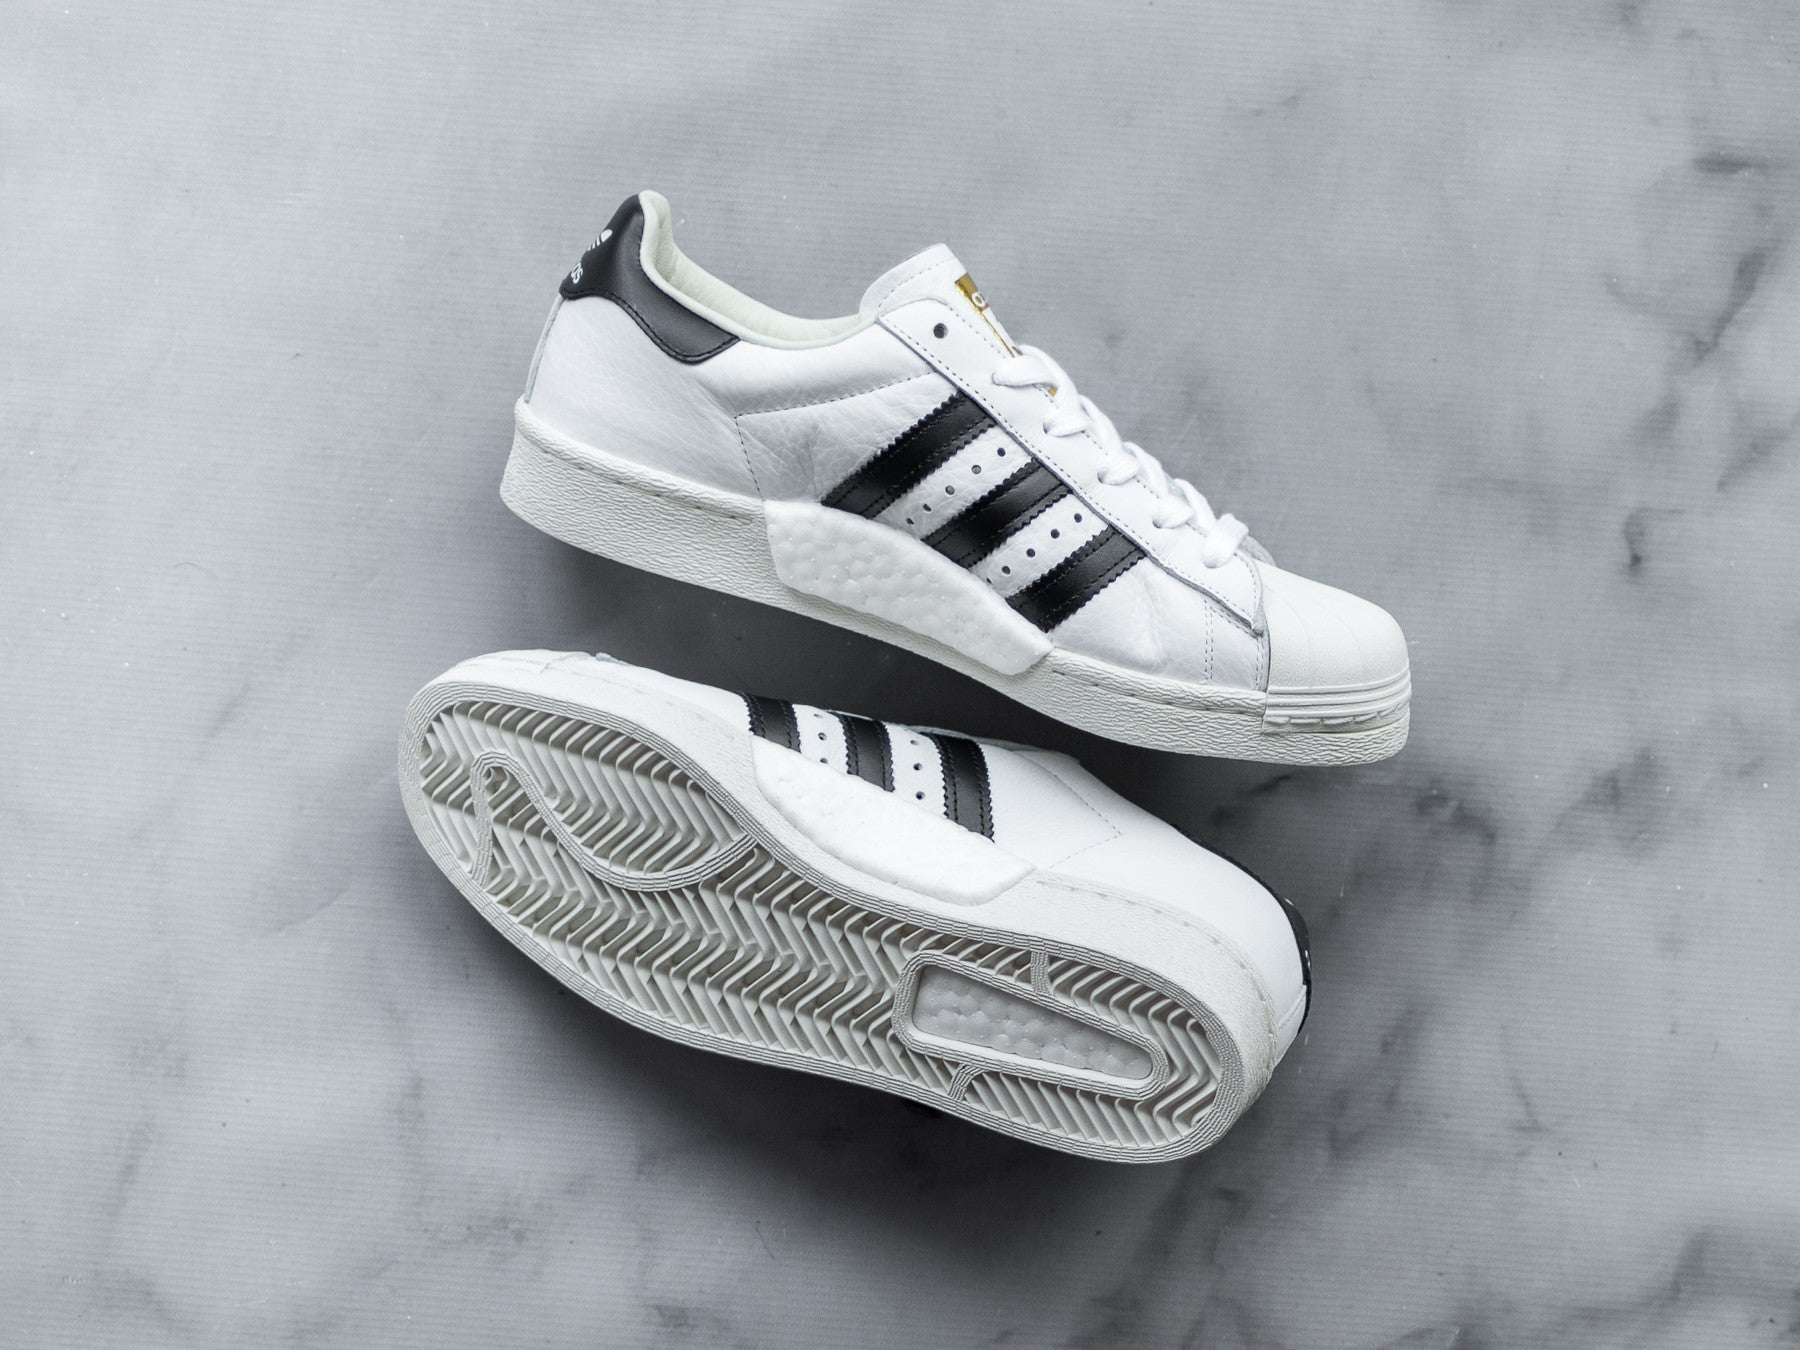 Adidas Originals Introducing Superstar Boost The aUgU5qBw